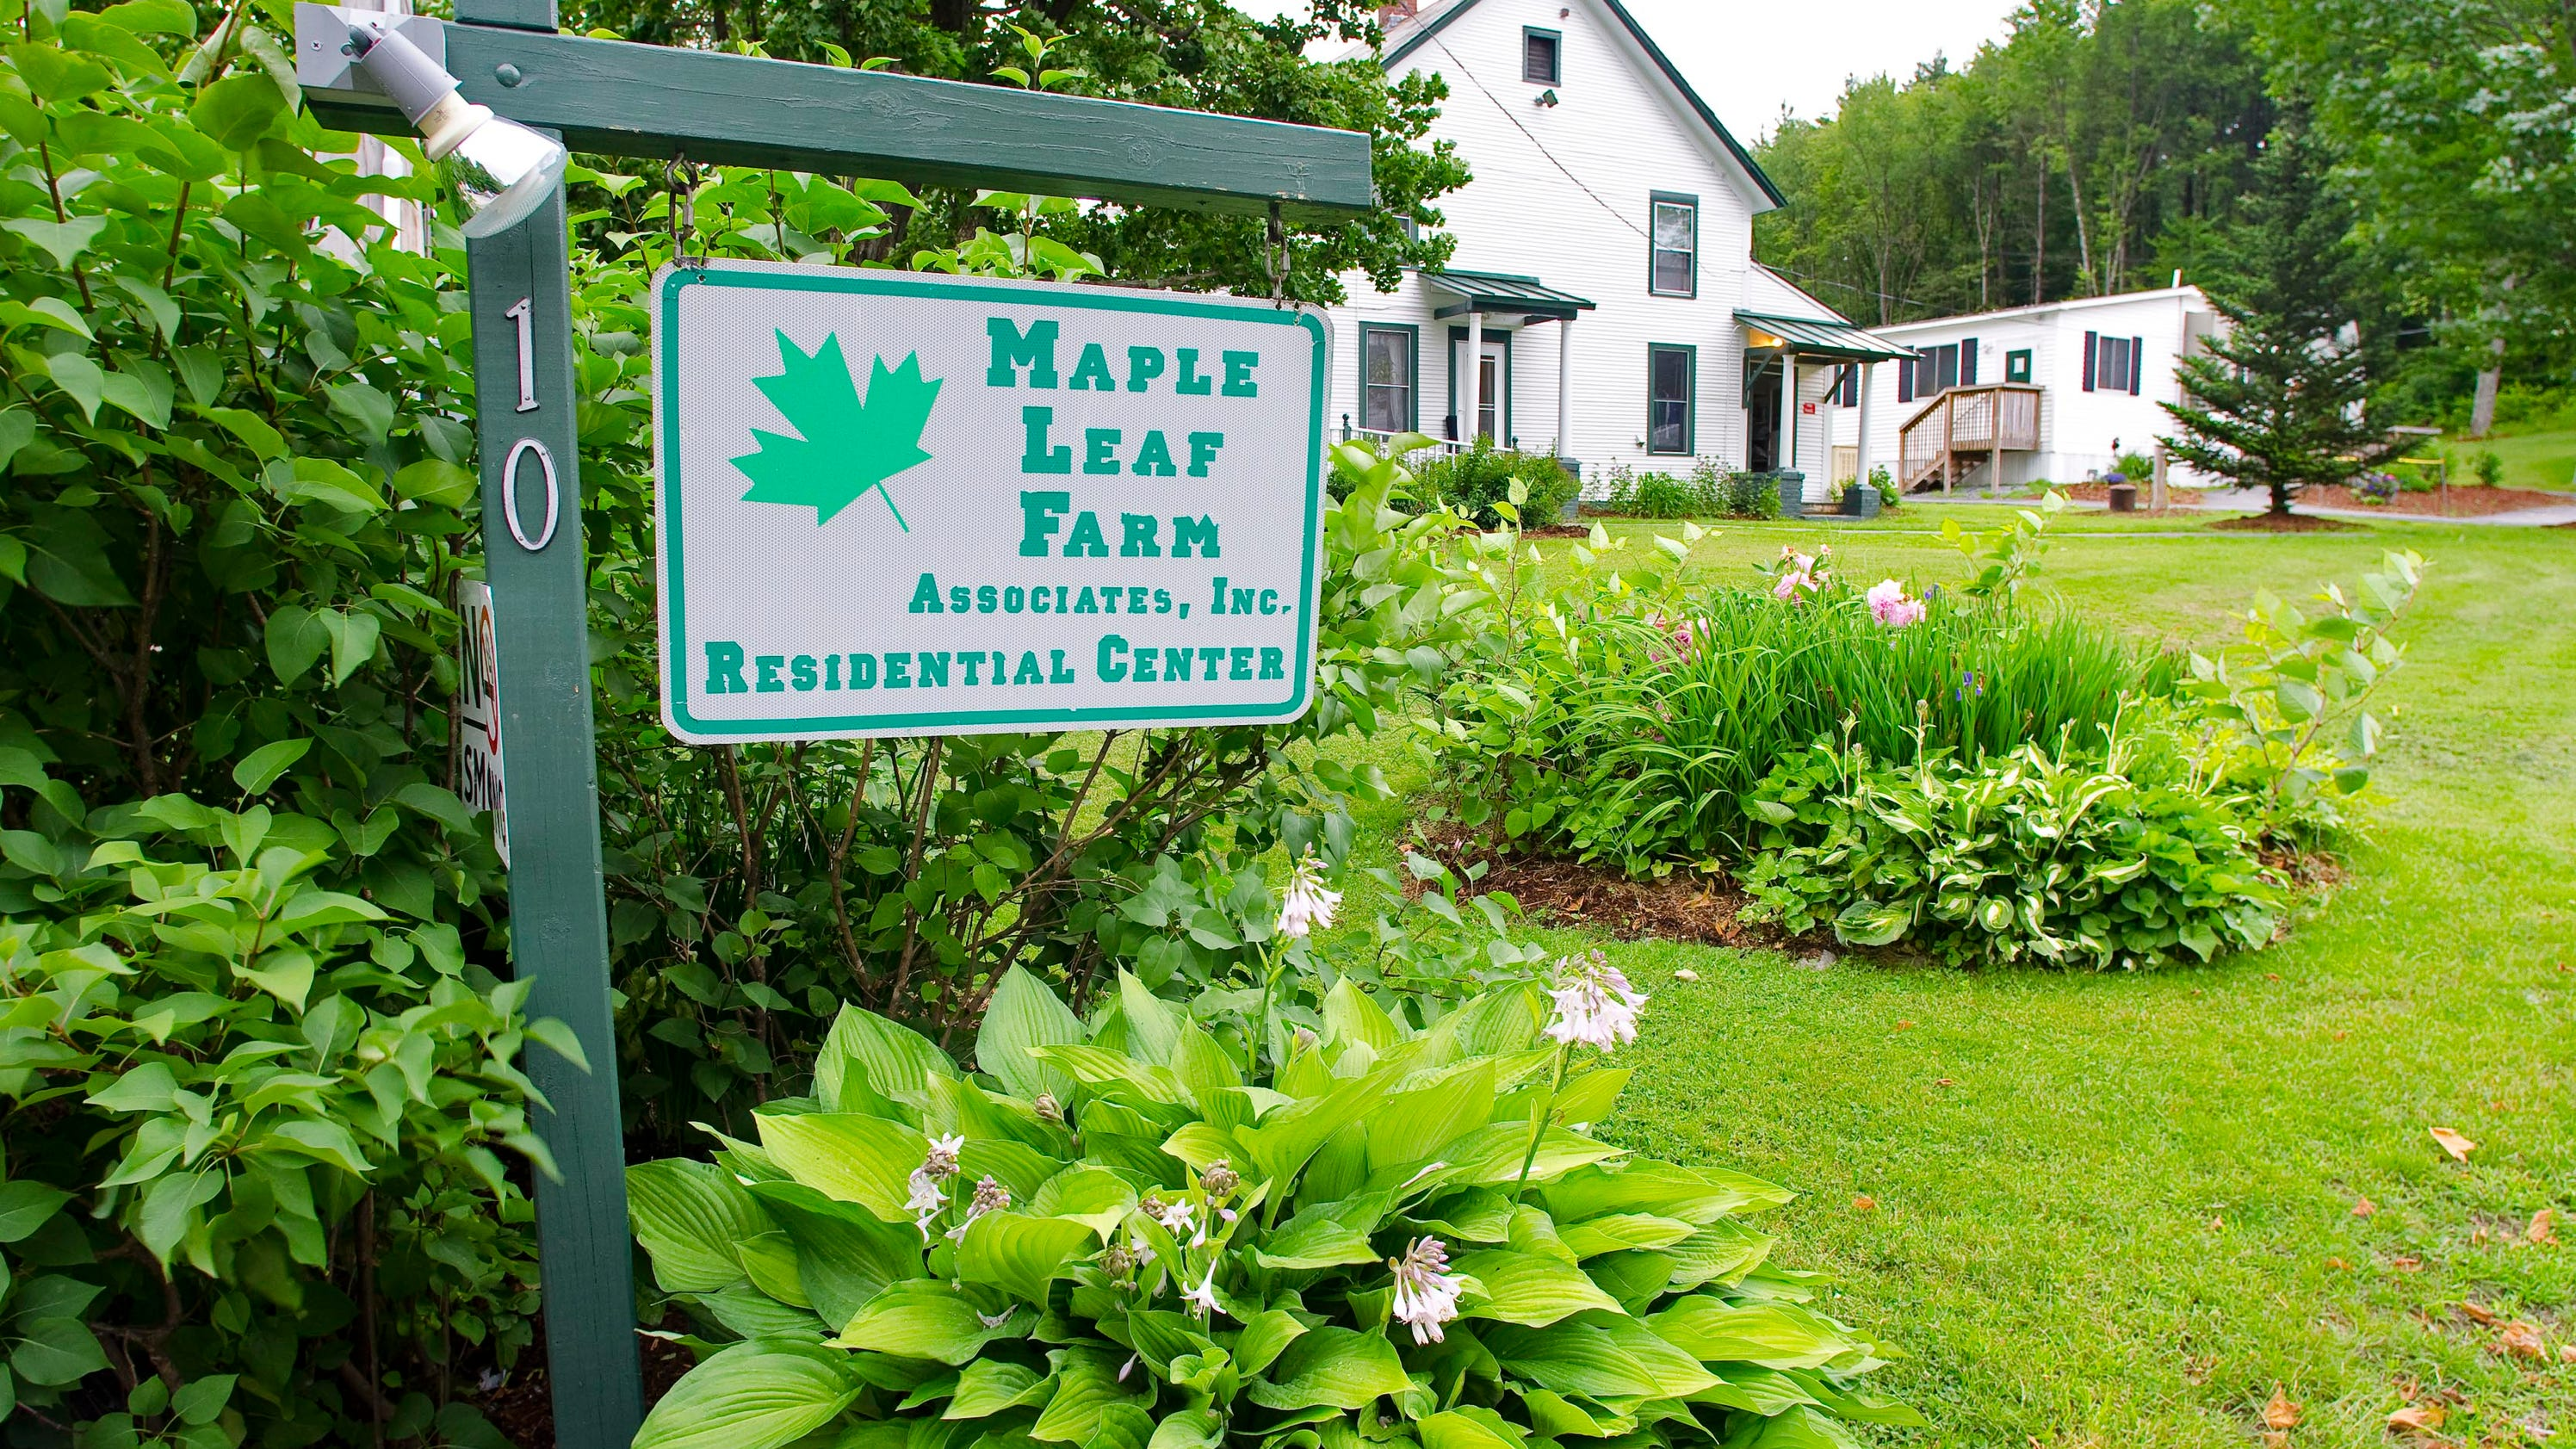 We welcome you to Maple Leaf Farms for a pleasurable shopping experience. The Country store is a Rustic Retreat that is filled with unique Decor gifts for indoor and outdoor. Relax to our country music as you stroll through our Nursery full of conifers, deciduous, and ornamental trees. In addition, we grow Acres of trees and shrubs.